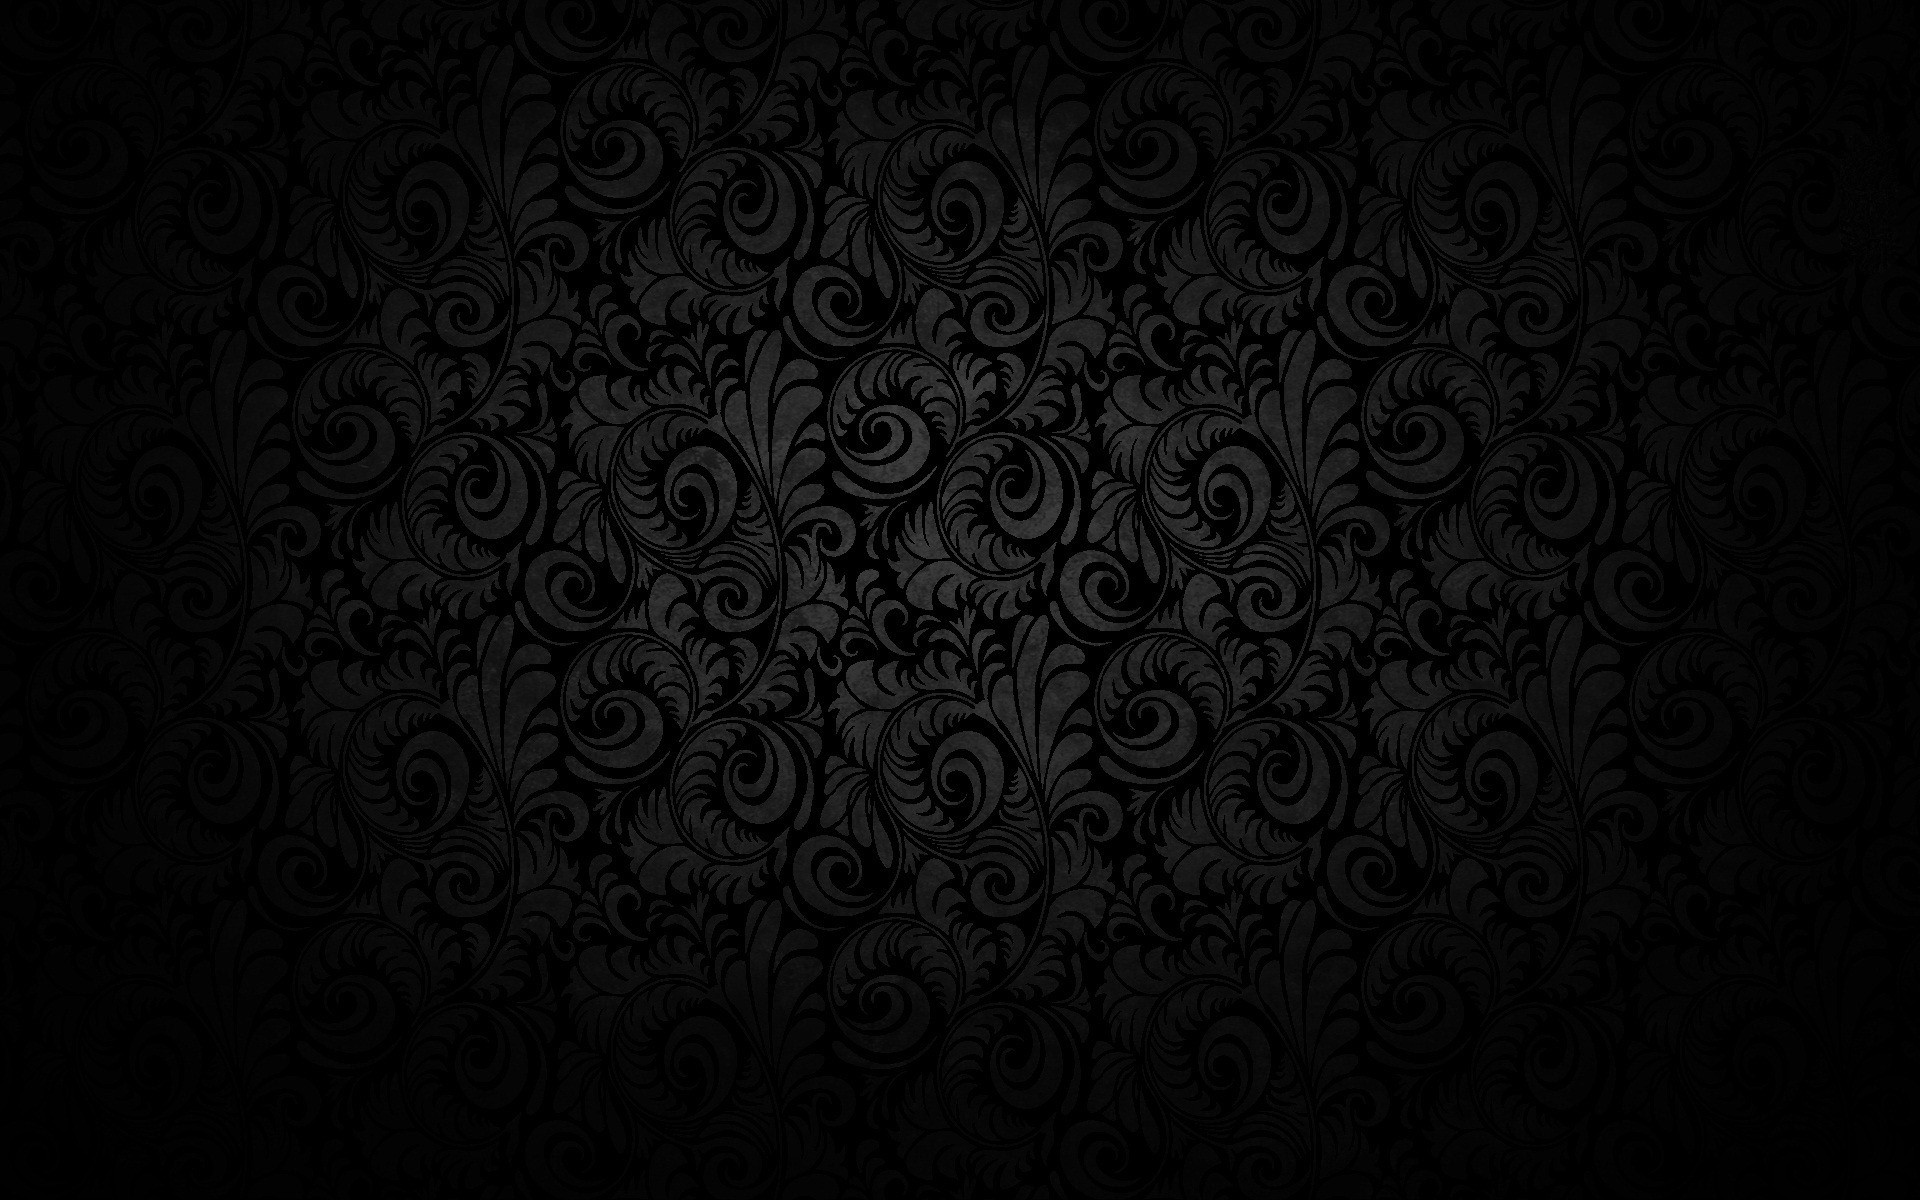 Simple plain black design hd wallpaper. Â«Â«